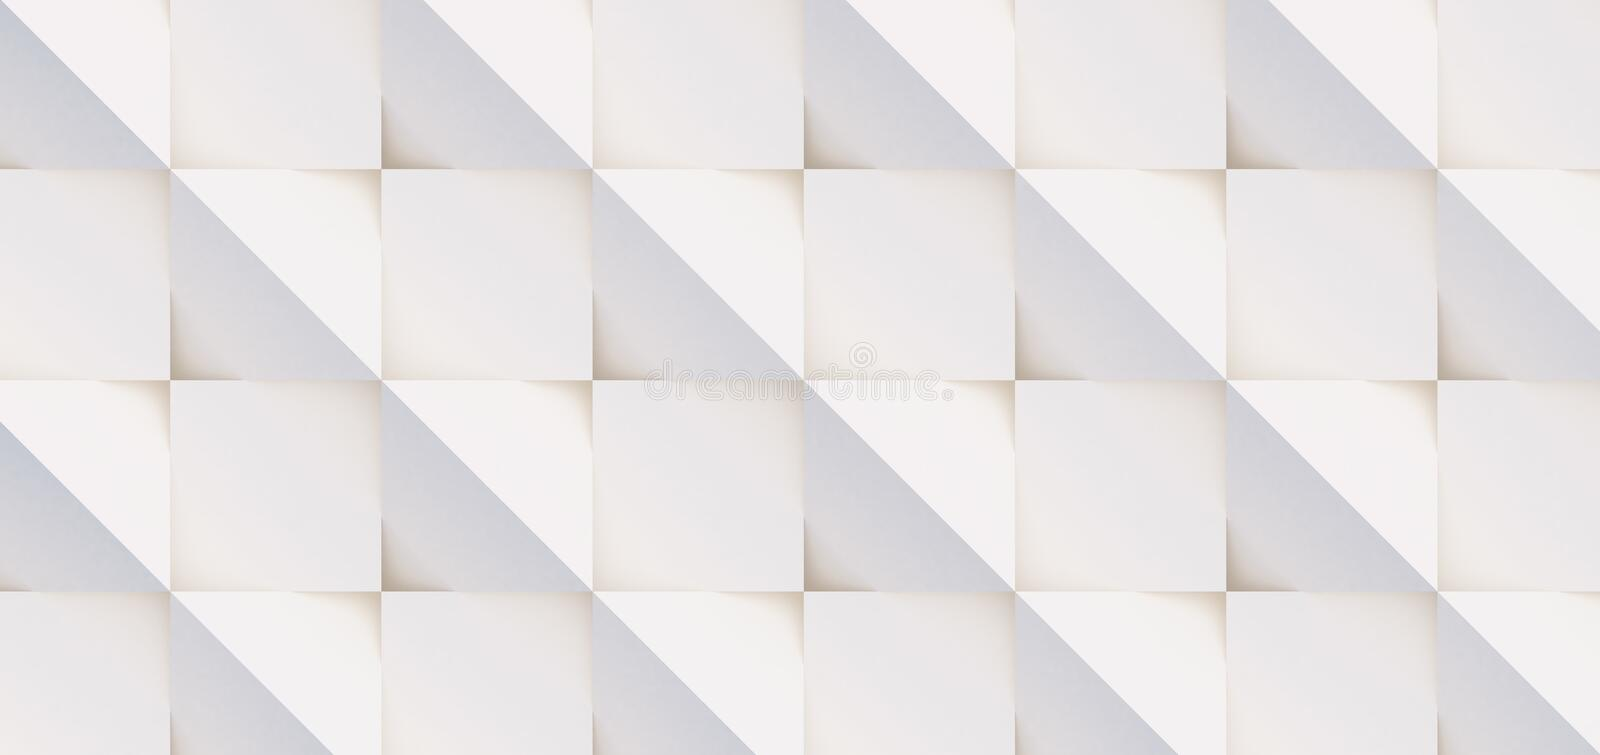 3D pattern of white and beige geometric shapes. 3D pattern made of white and beige geometric shapes, creative background or wallpaper surface made of light and royalty free stock image